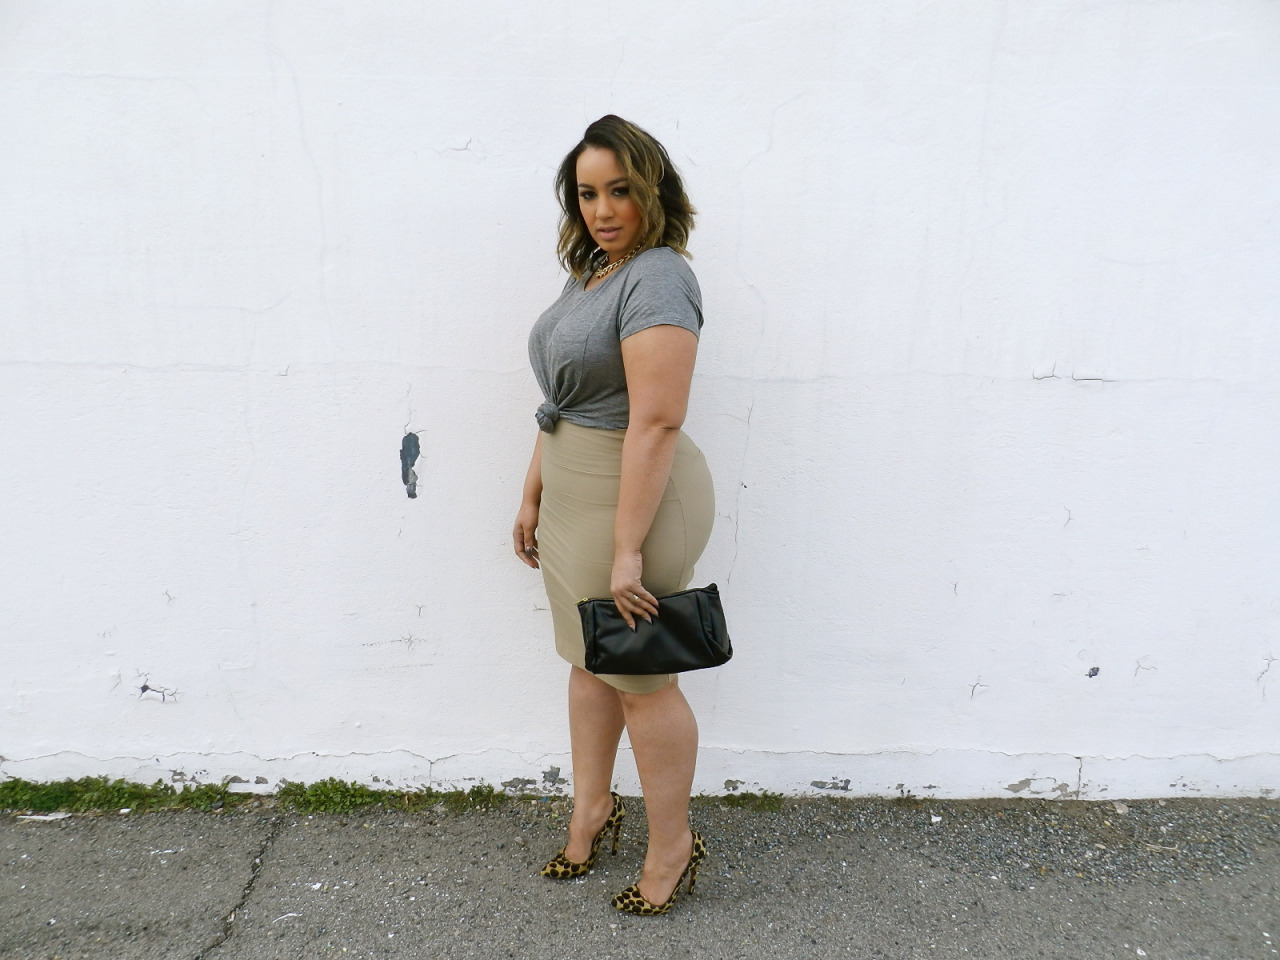 beauticurve pencil skirts and t shirts beauticurve